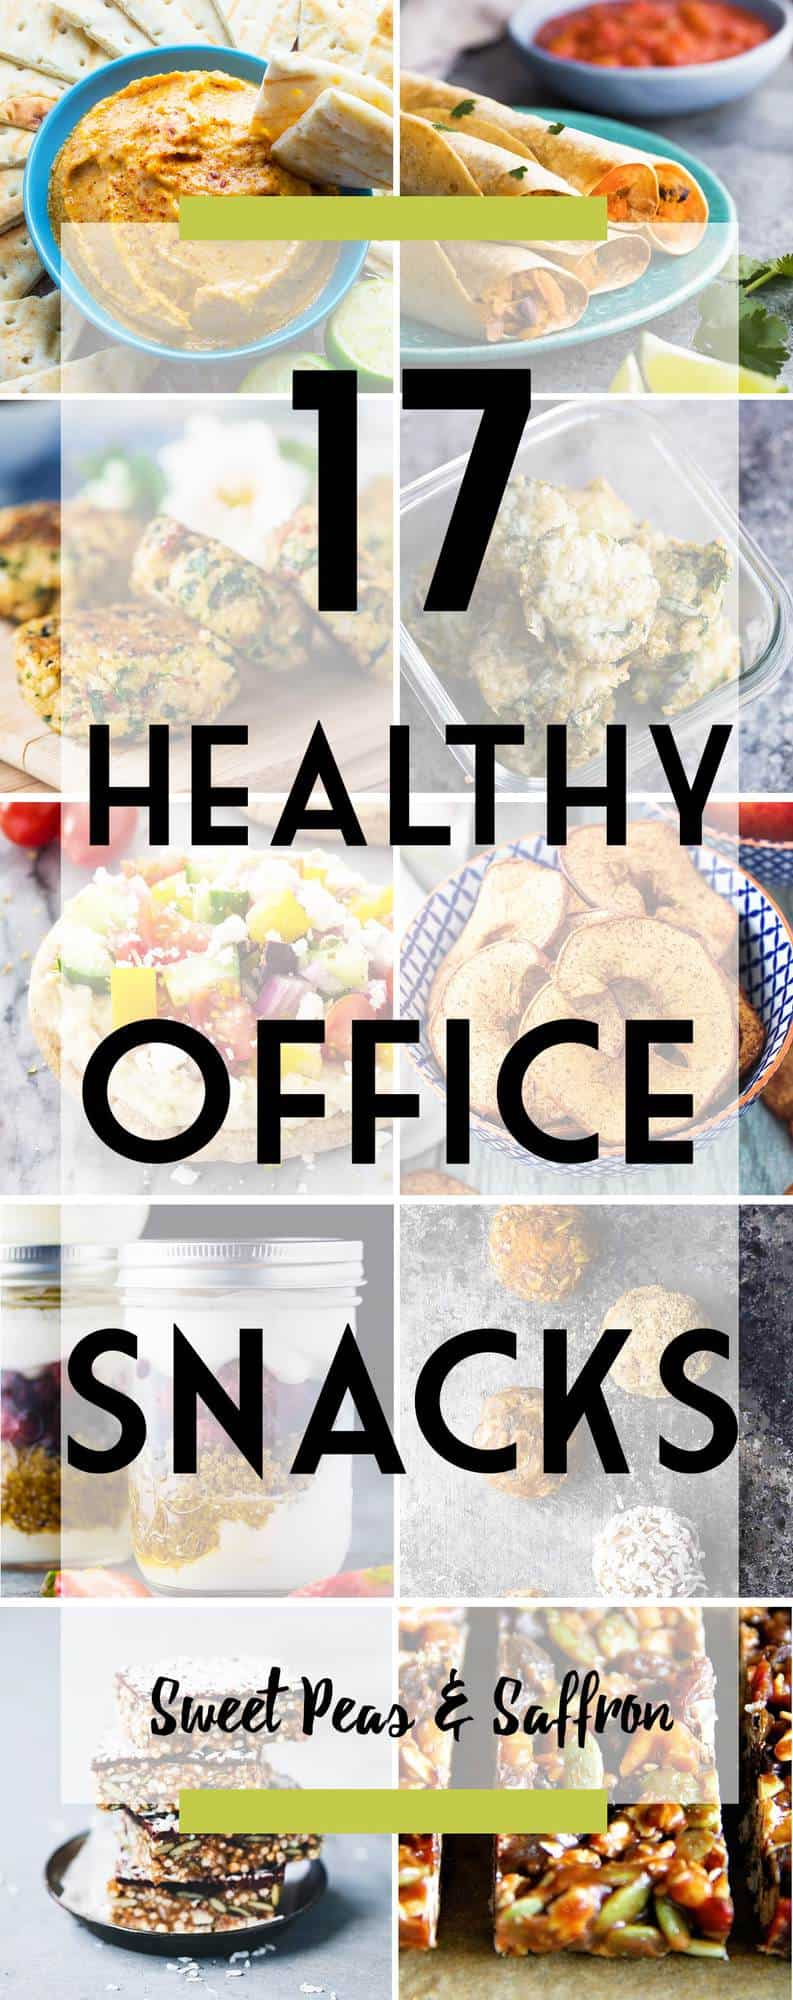 These healthy office snacks will keep you going in the afternoon while keeping things light.  Tons of easy portable recipe ideas, and perfect for prepping on meal prep Sunday!